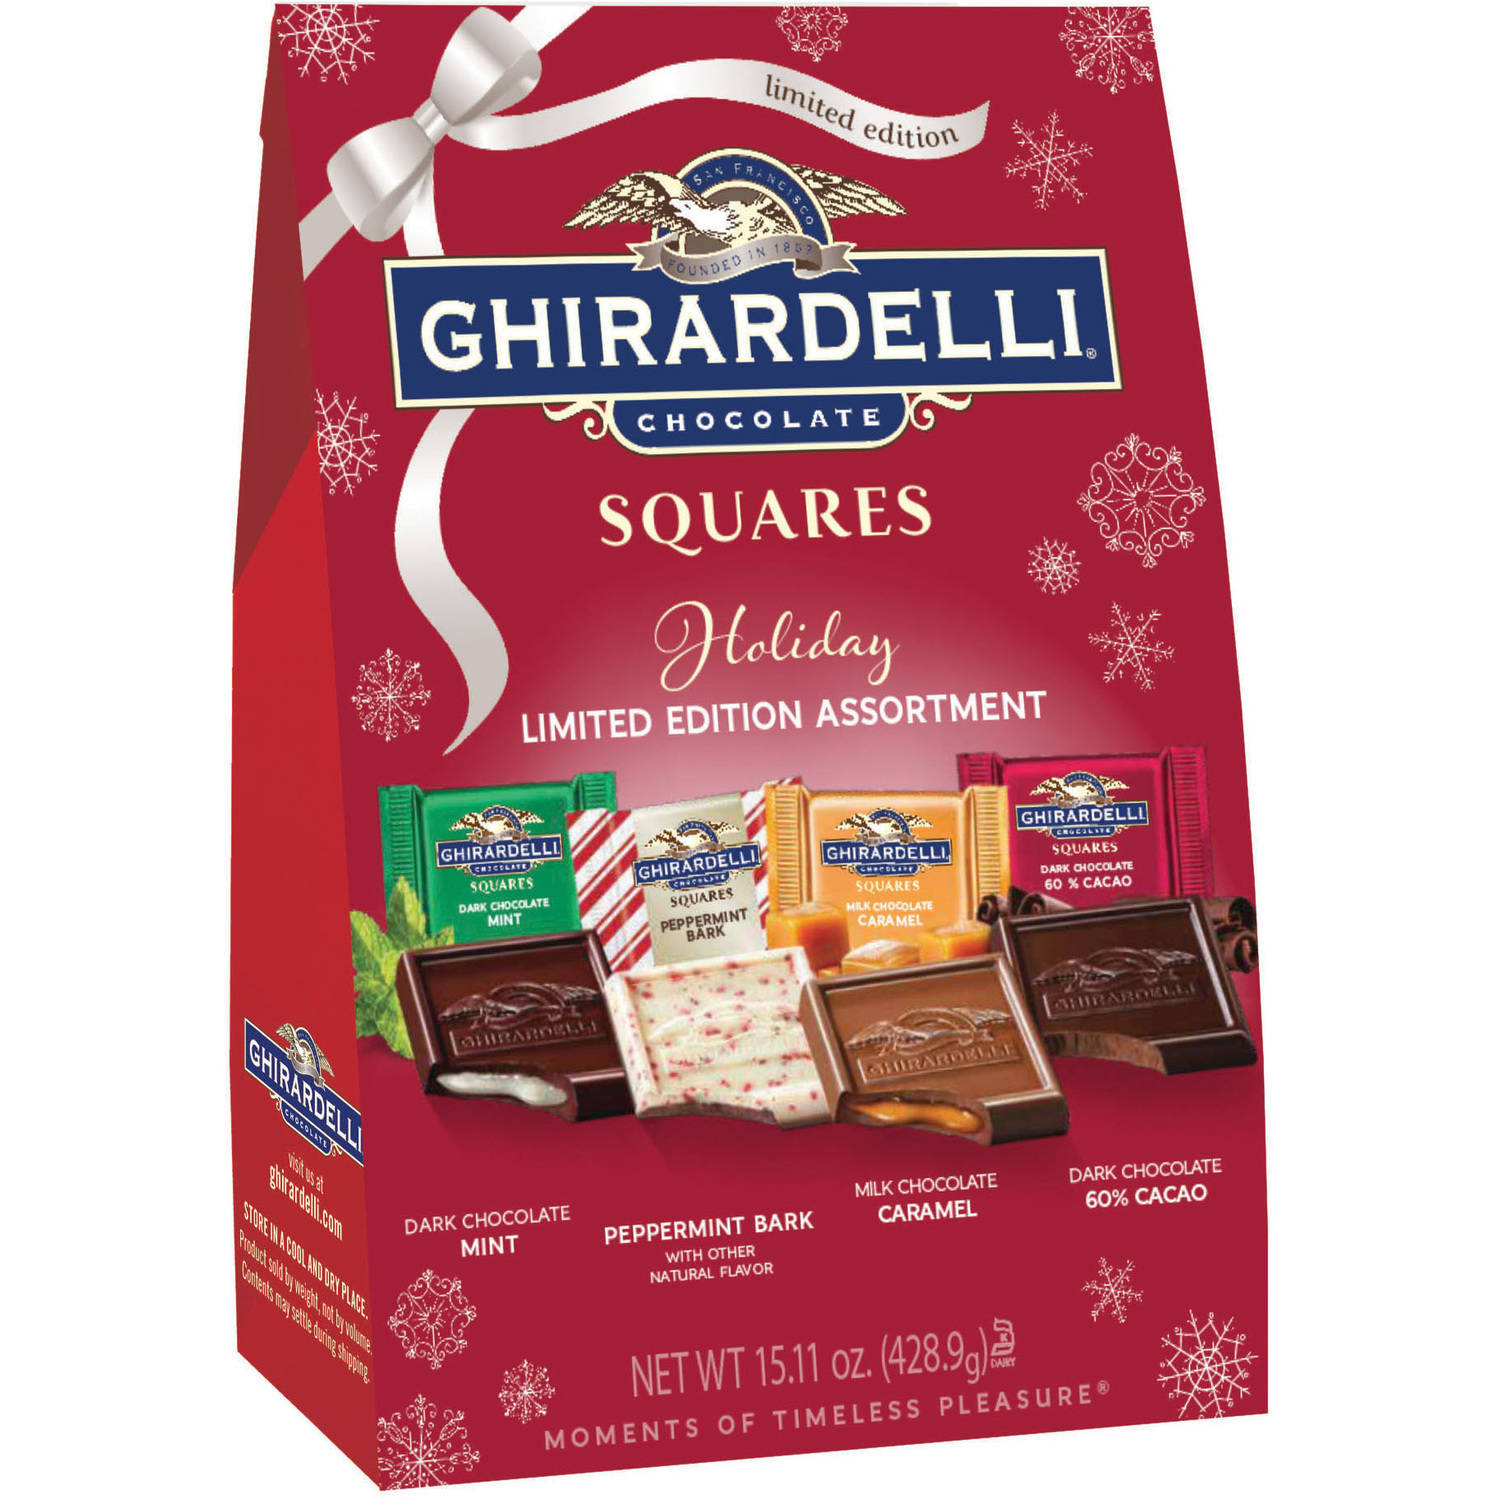 Ghirardelli Chocolate Limited Edition Holiday Squares, 15.11 oz